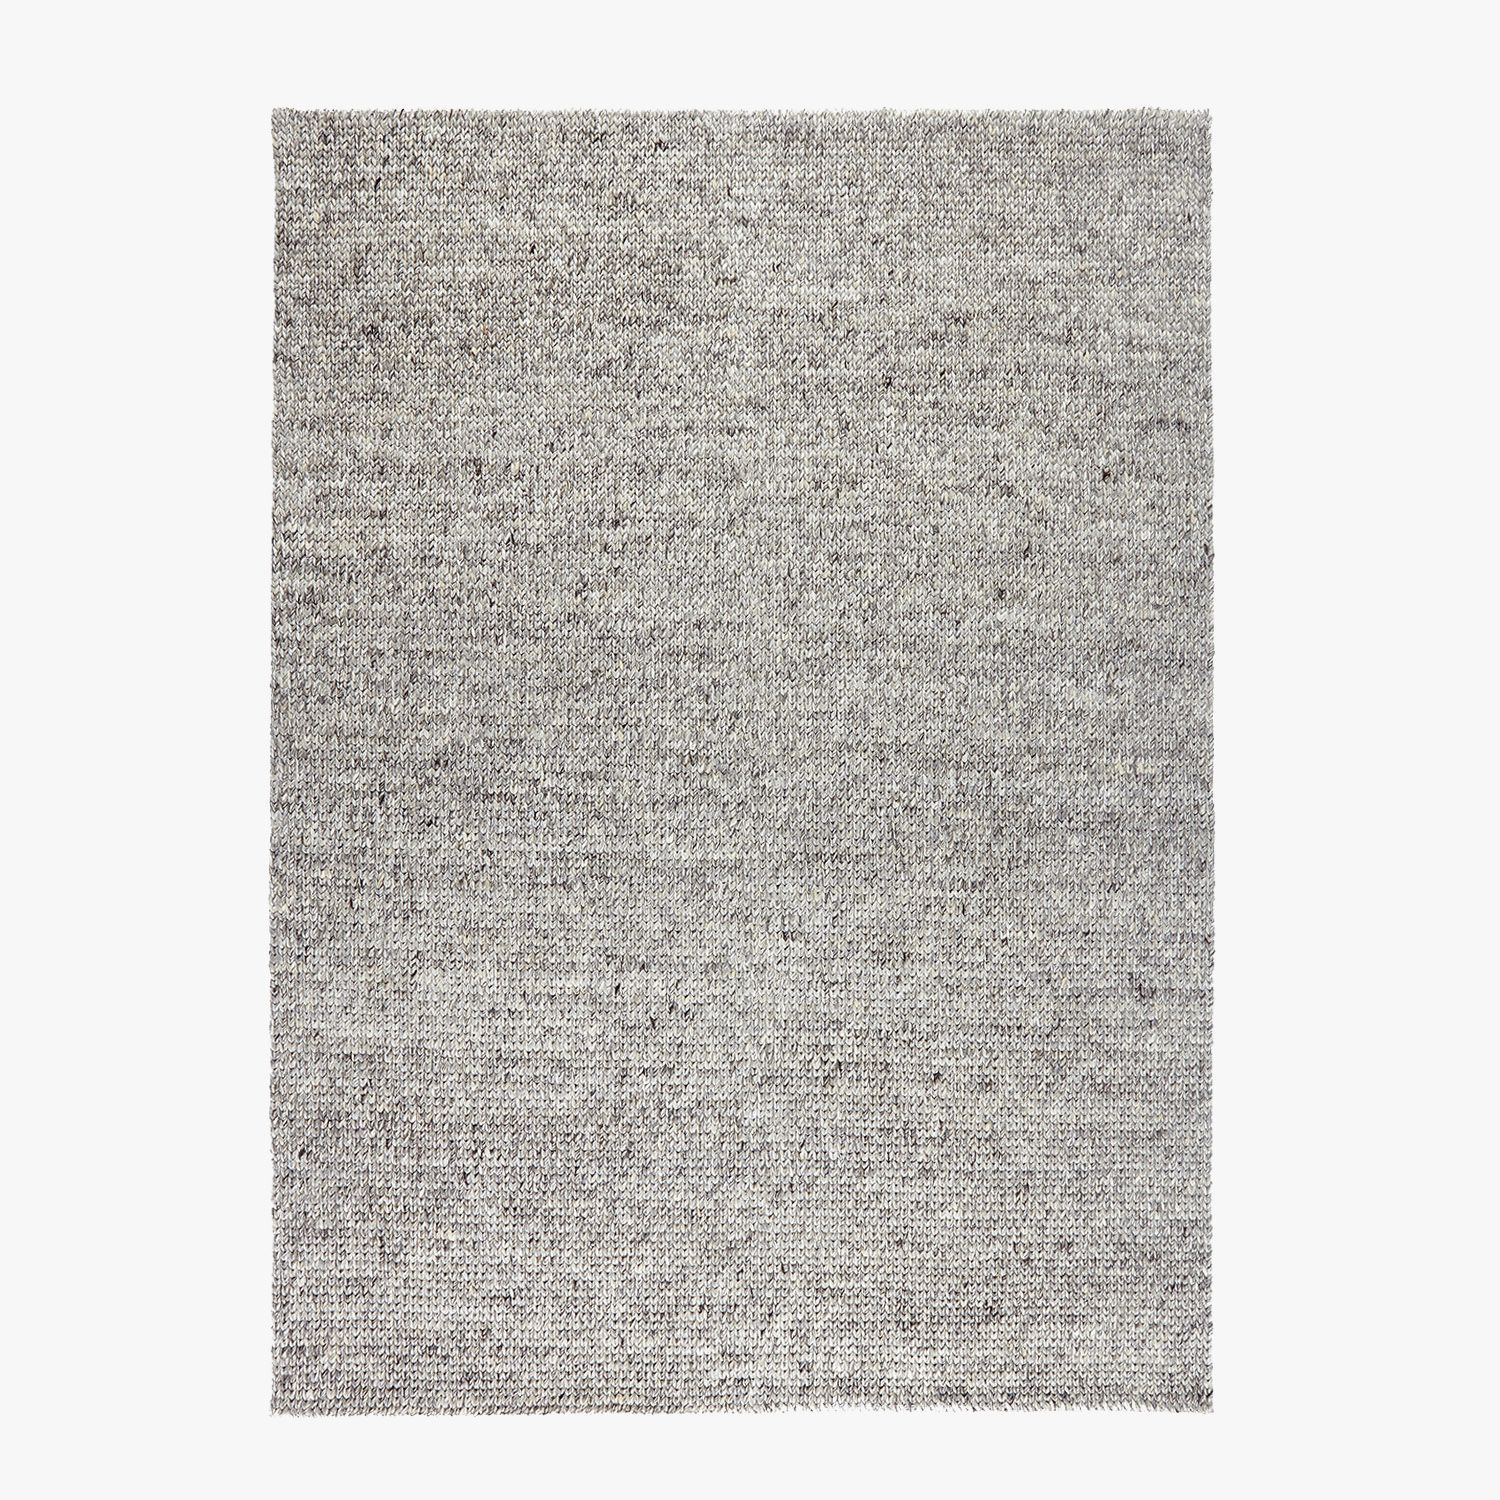 Our Handmade Sierra Pumice Flat Weave Rug From Armadillo Co Is The Perfect Neutral For Any